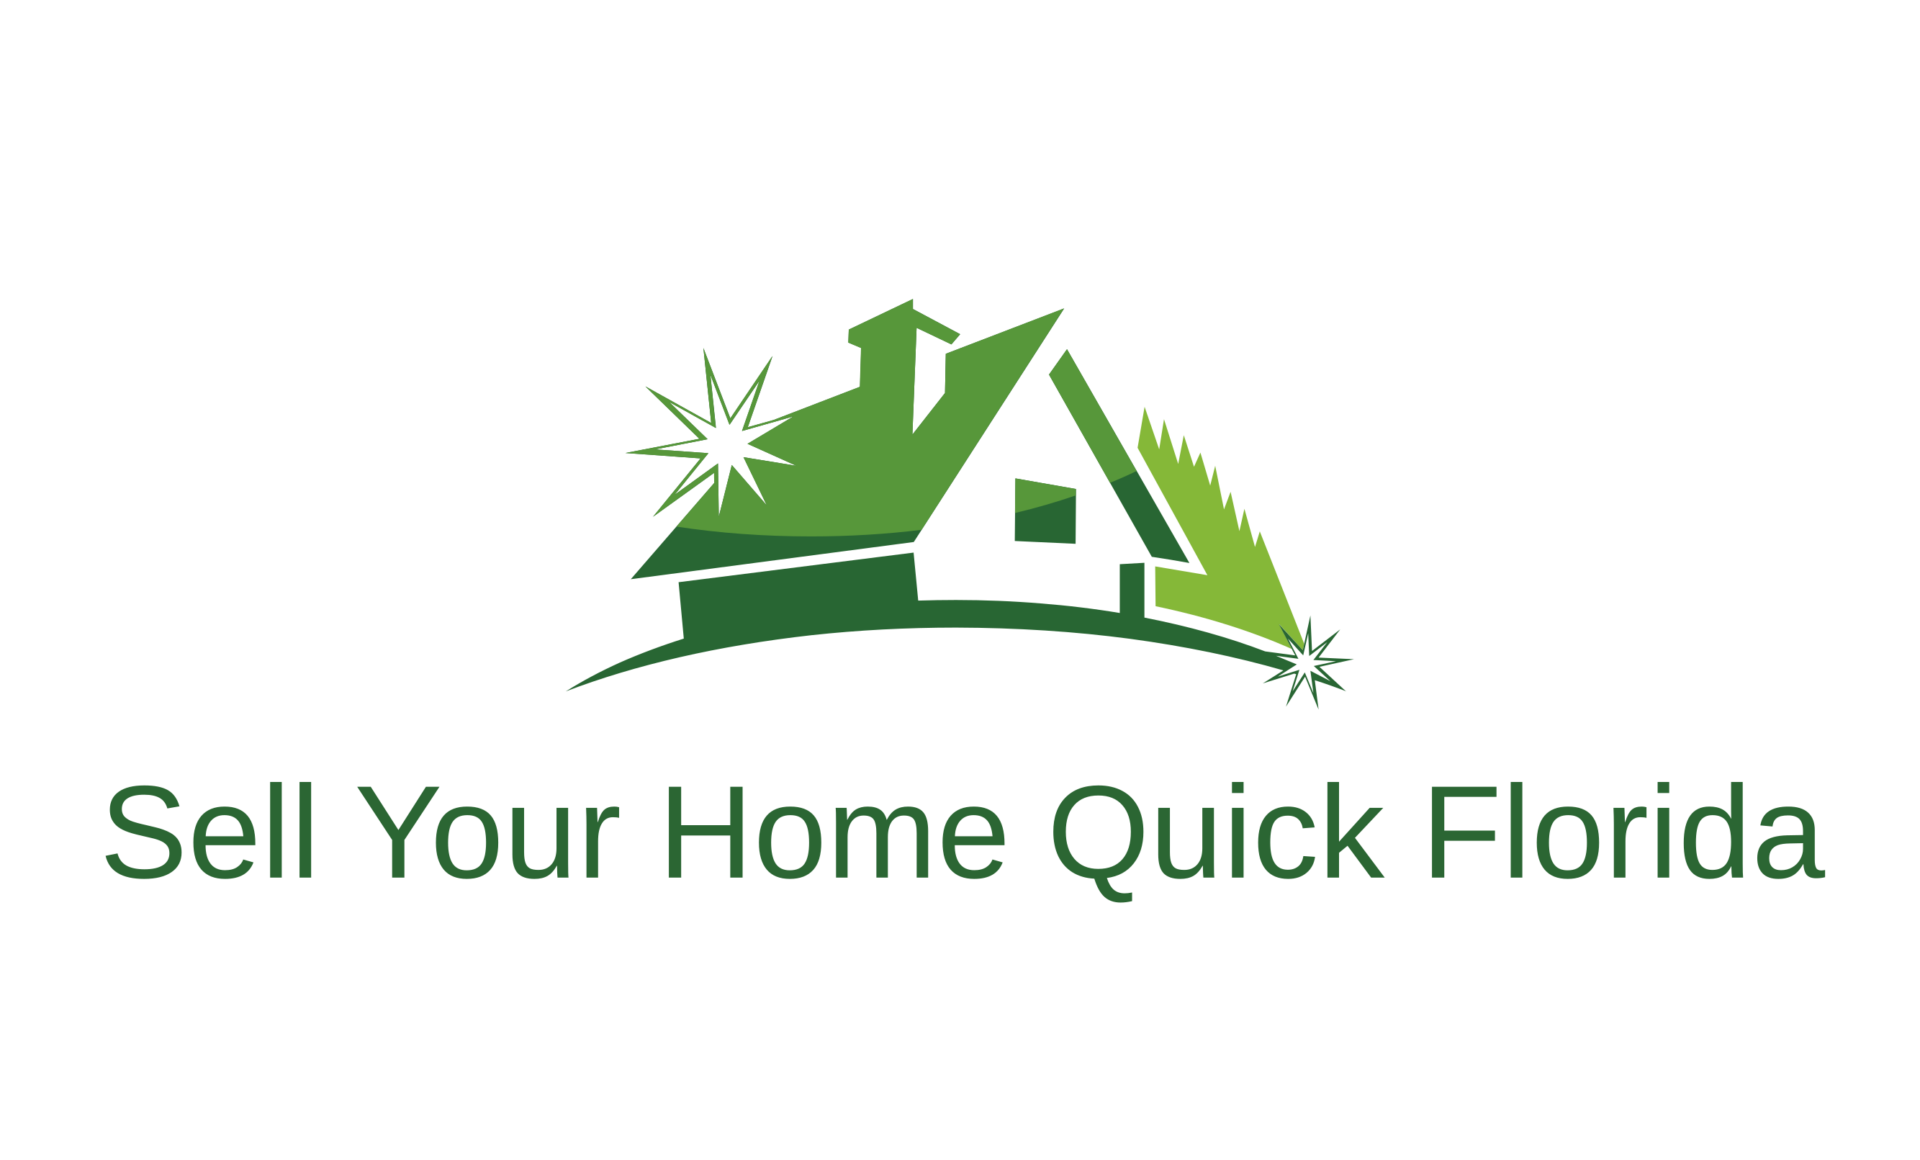 Sell Your Home Quick Florida logo